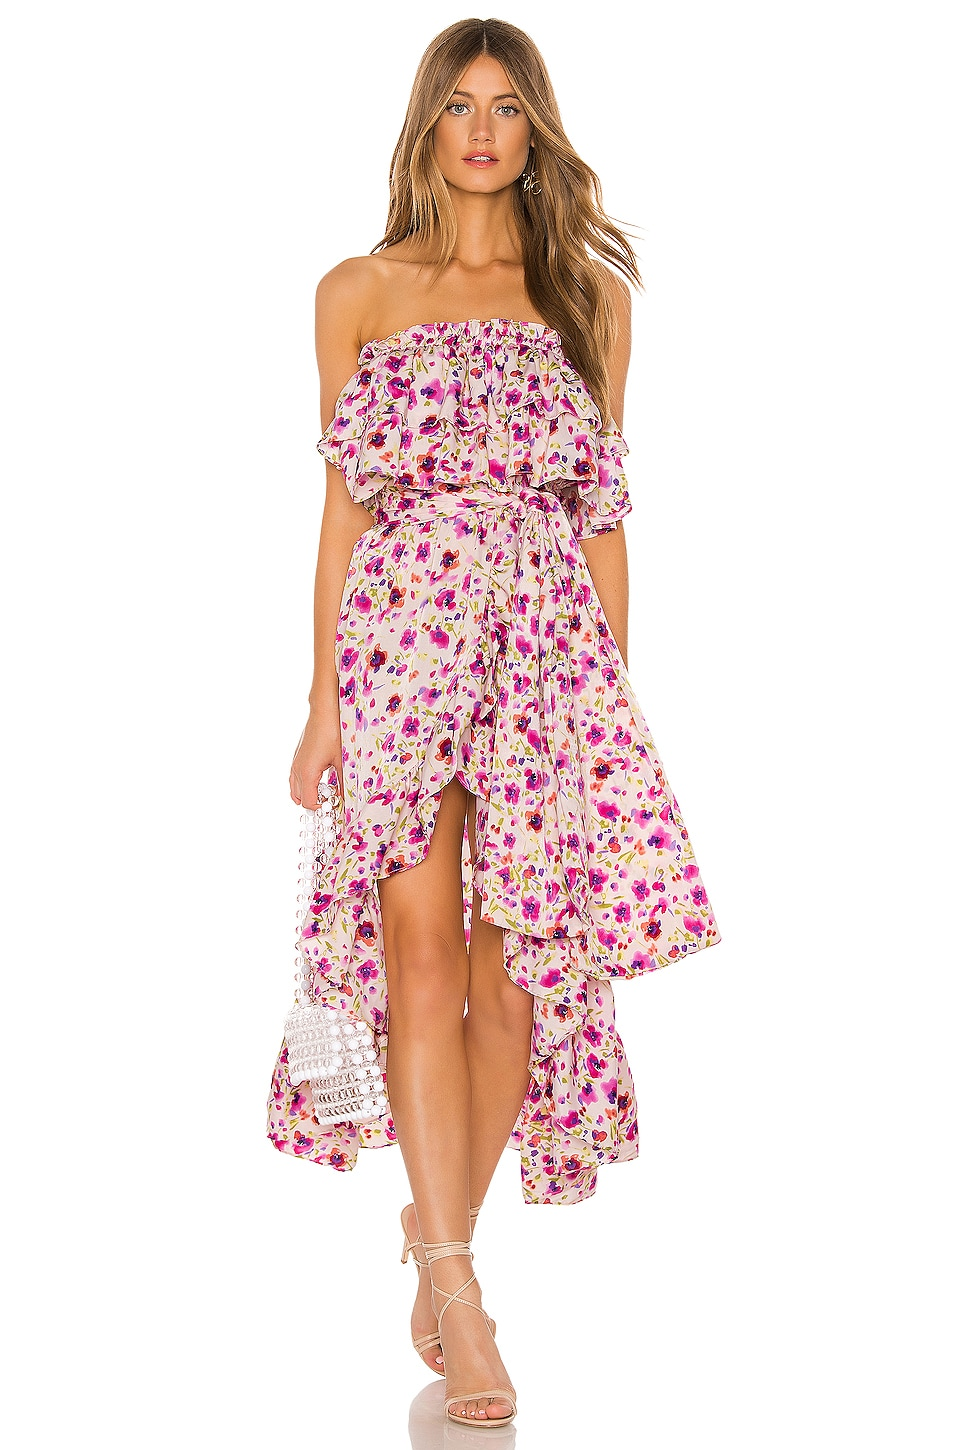 MISA Los Angeles Sabella Dress in Fuchsia Floral